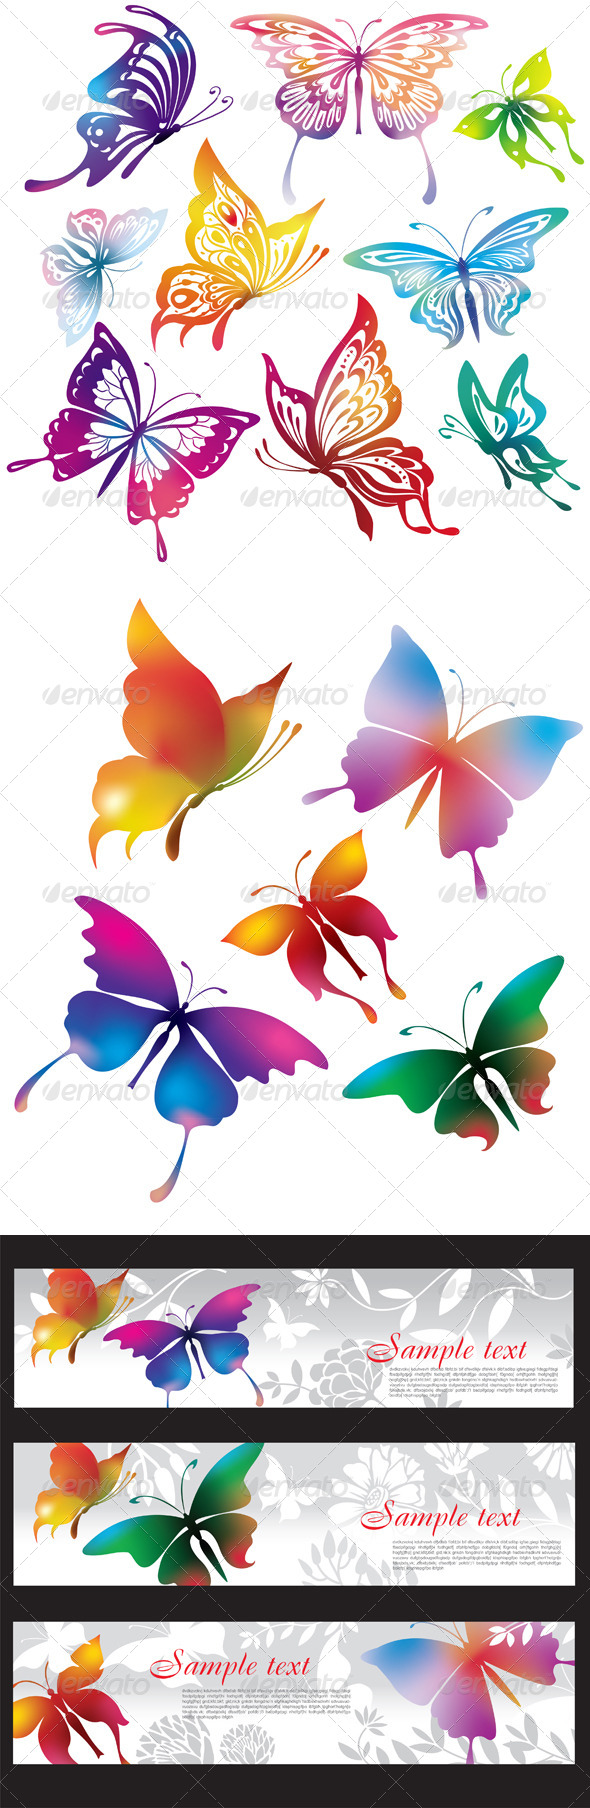 GraphicRiver Butterflies 6474952